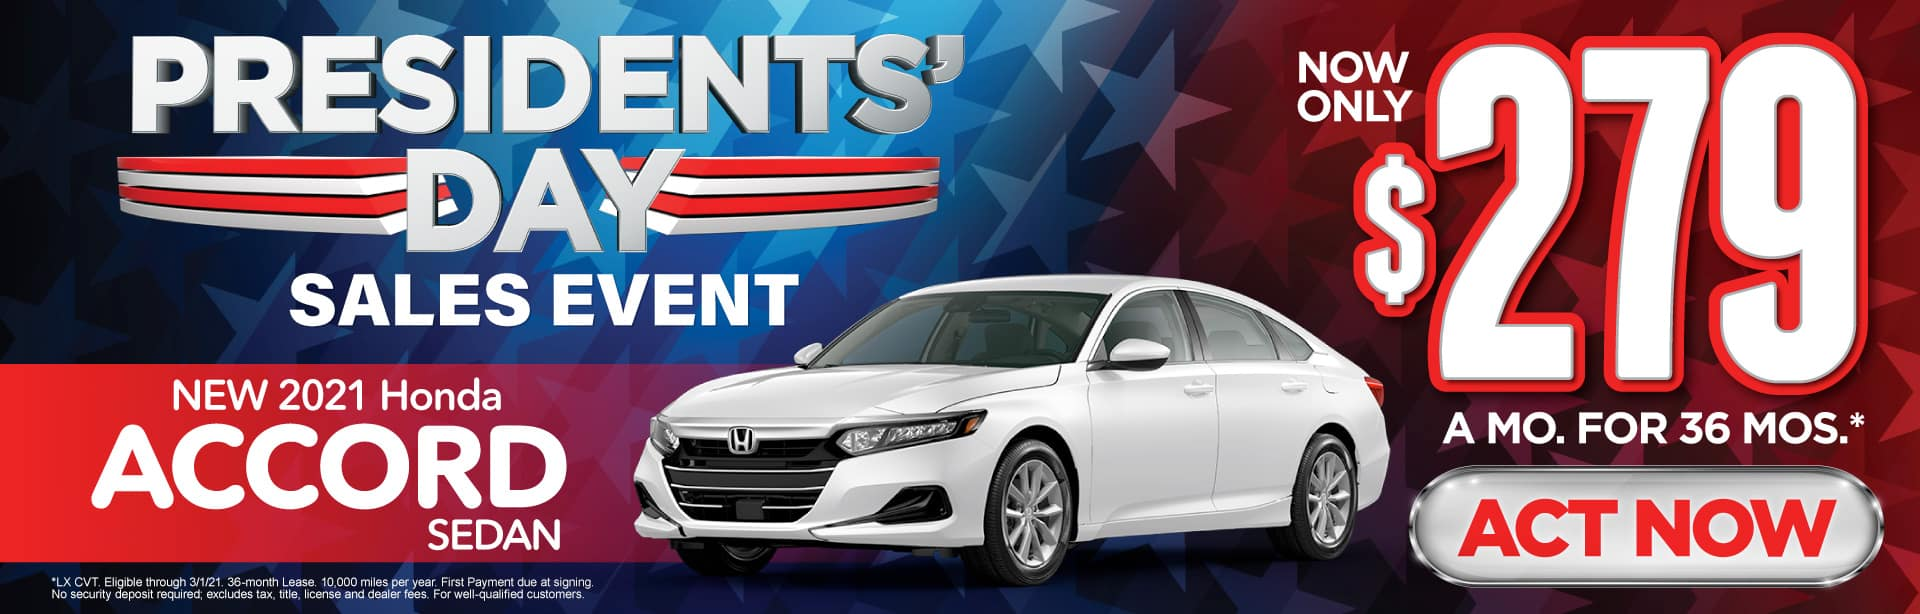 New 2021 Honda Accord - Only $279 a month - Act Now